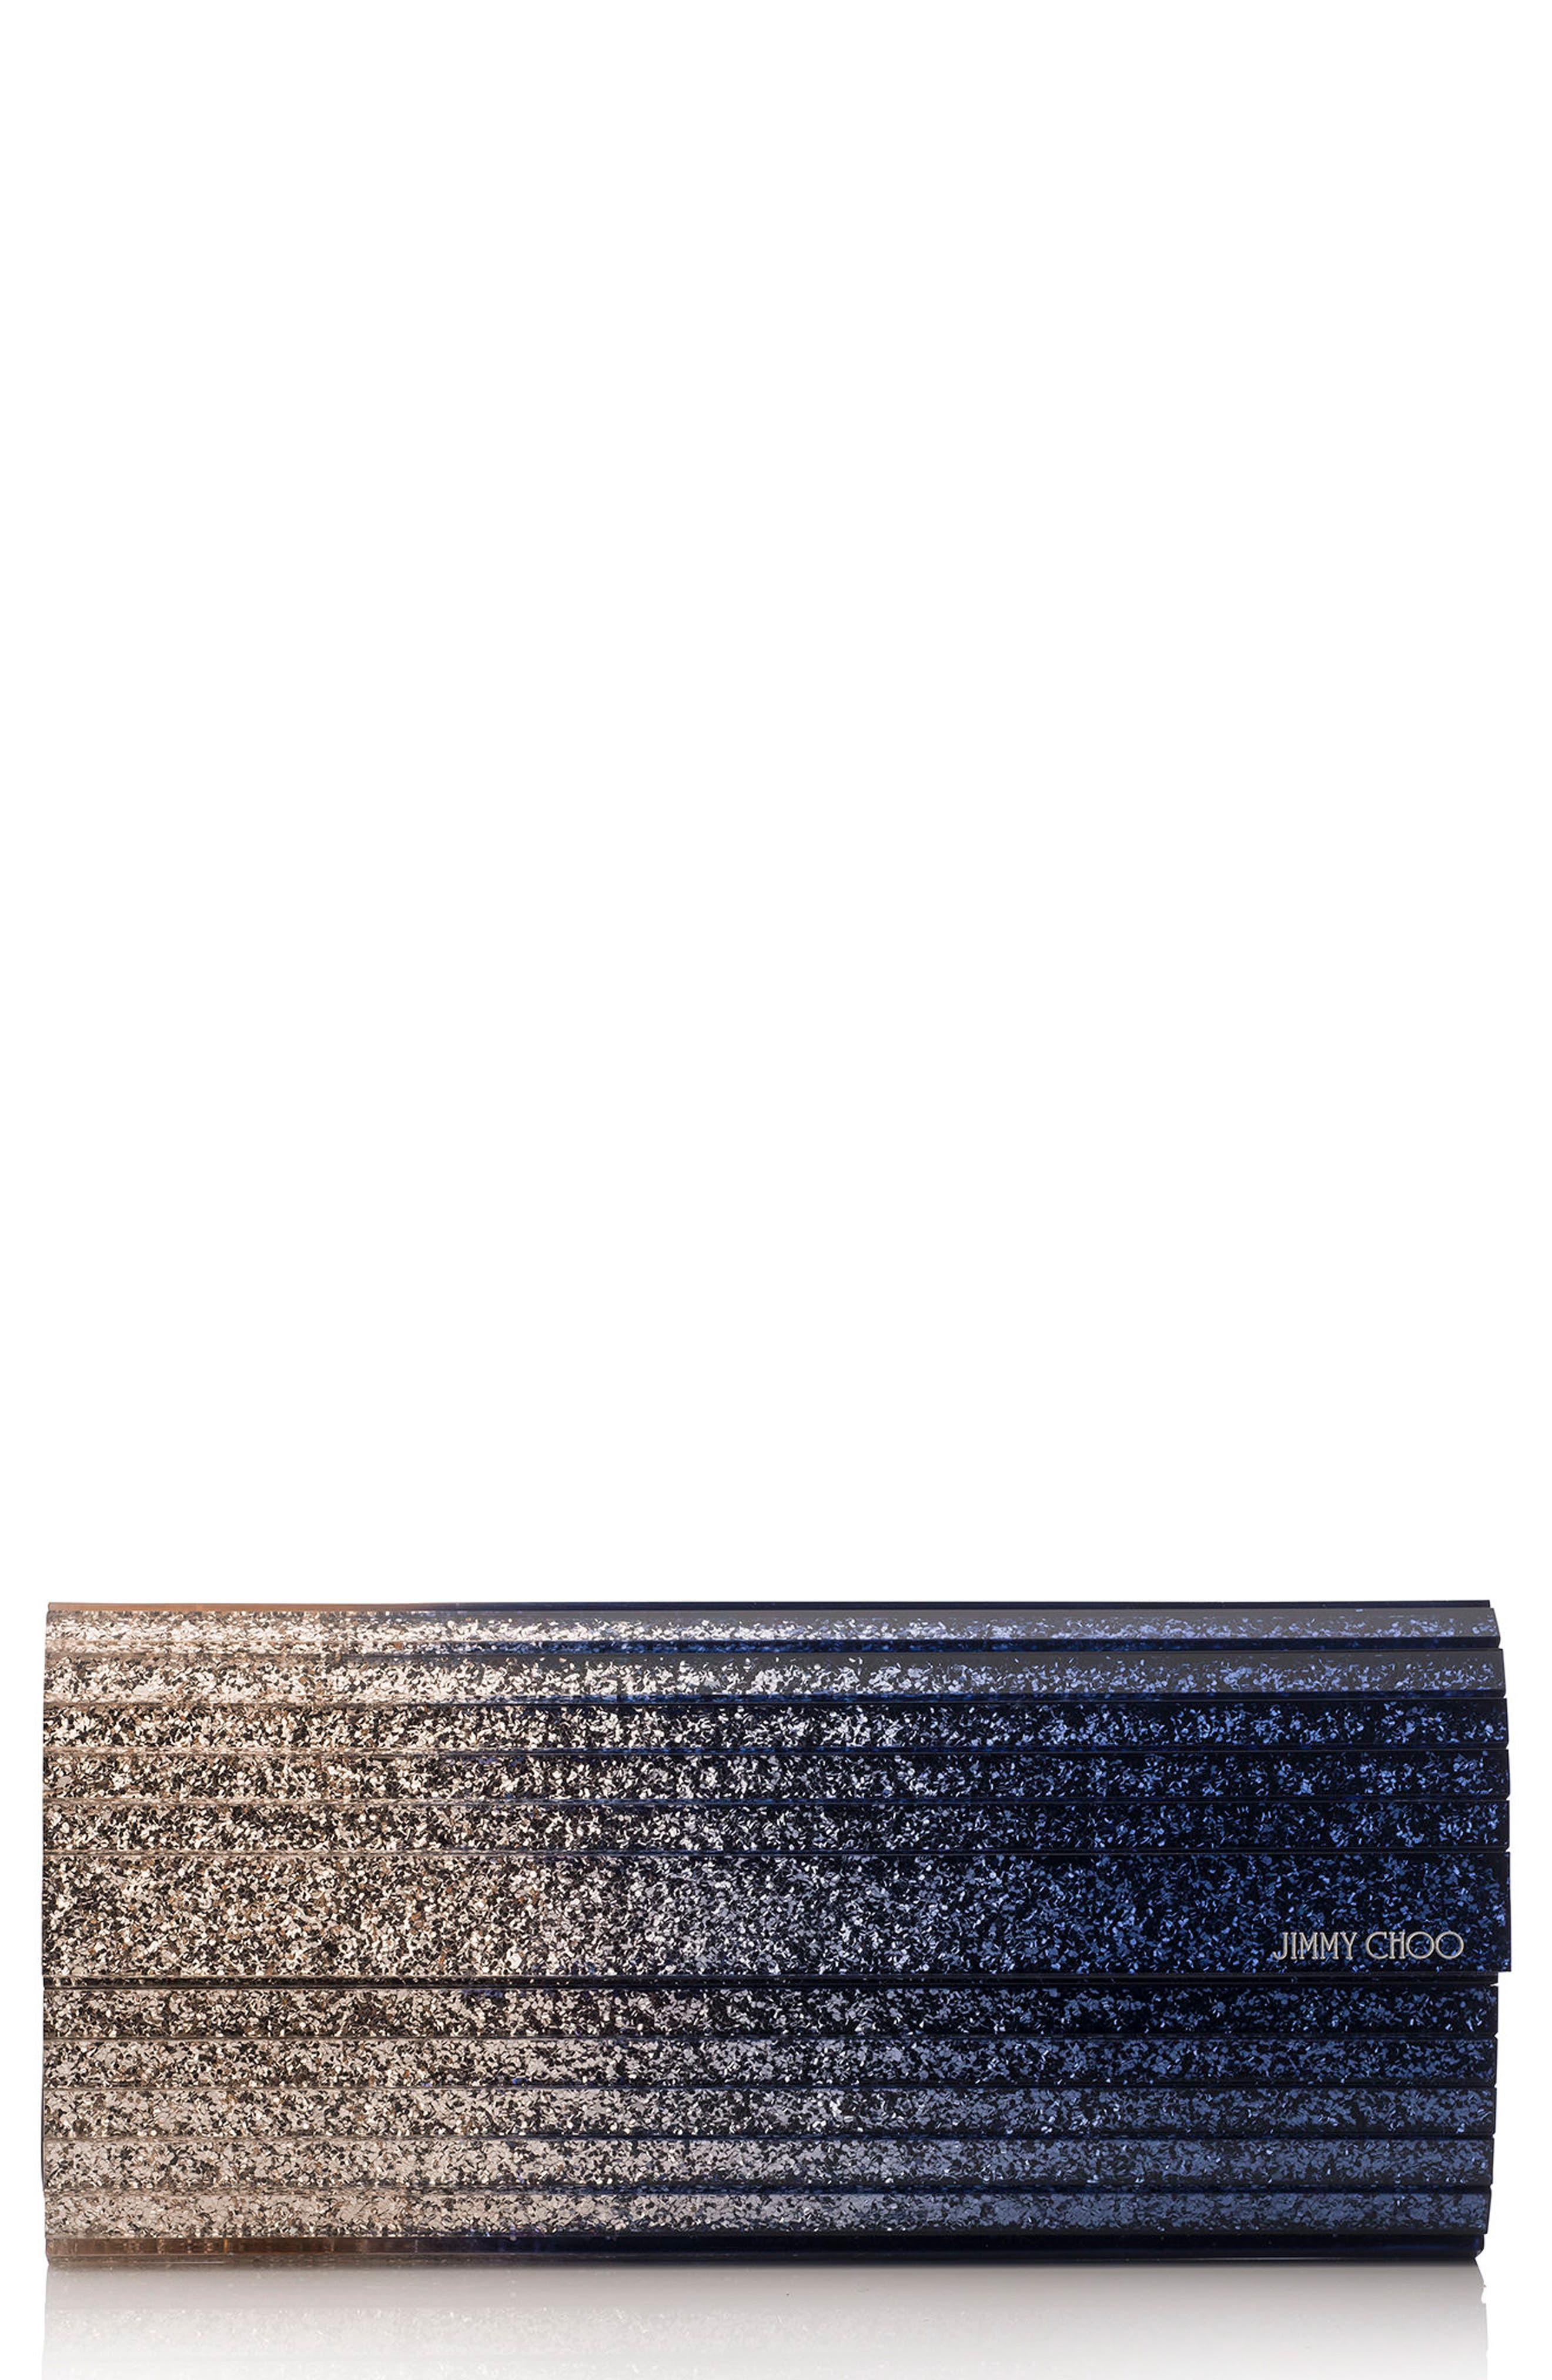 JIMMY CHOO 'Sweetie' Clutch, Main, color, 041